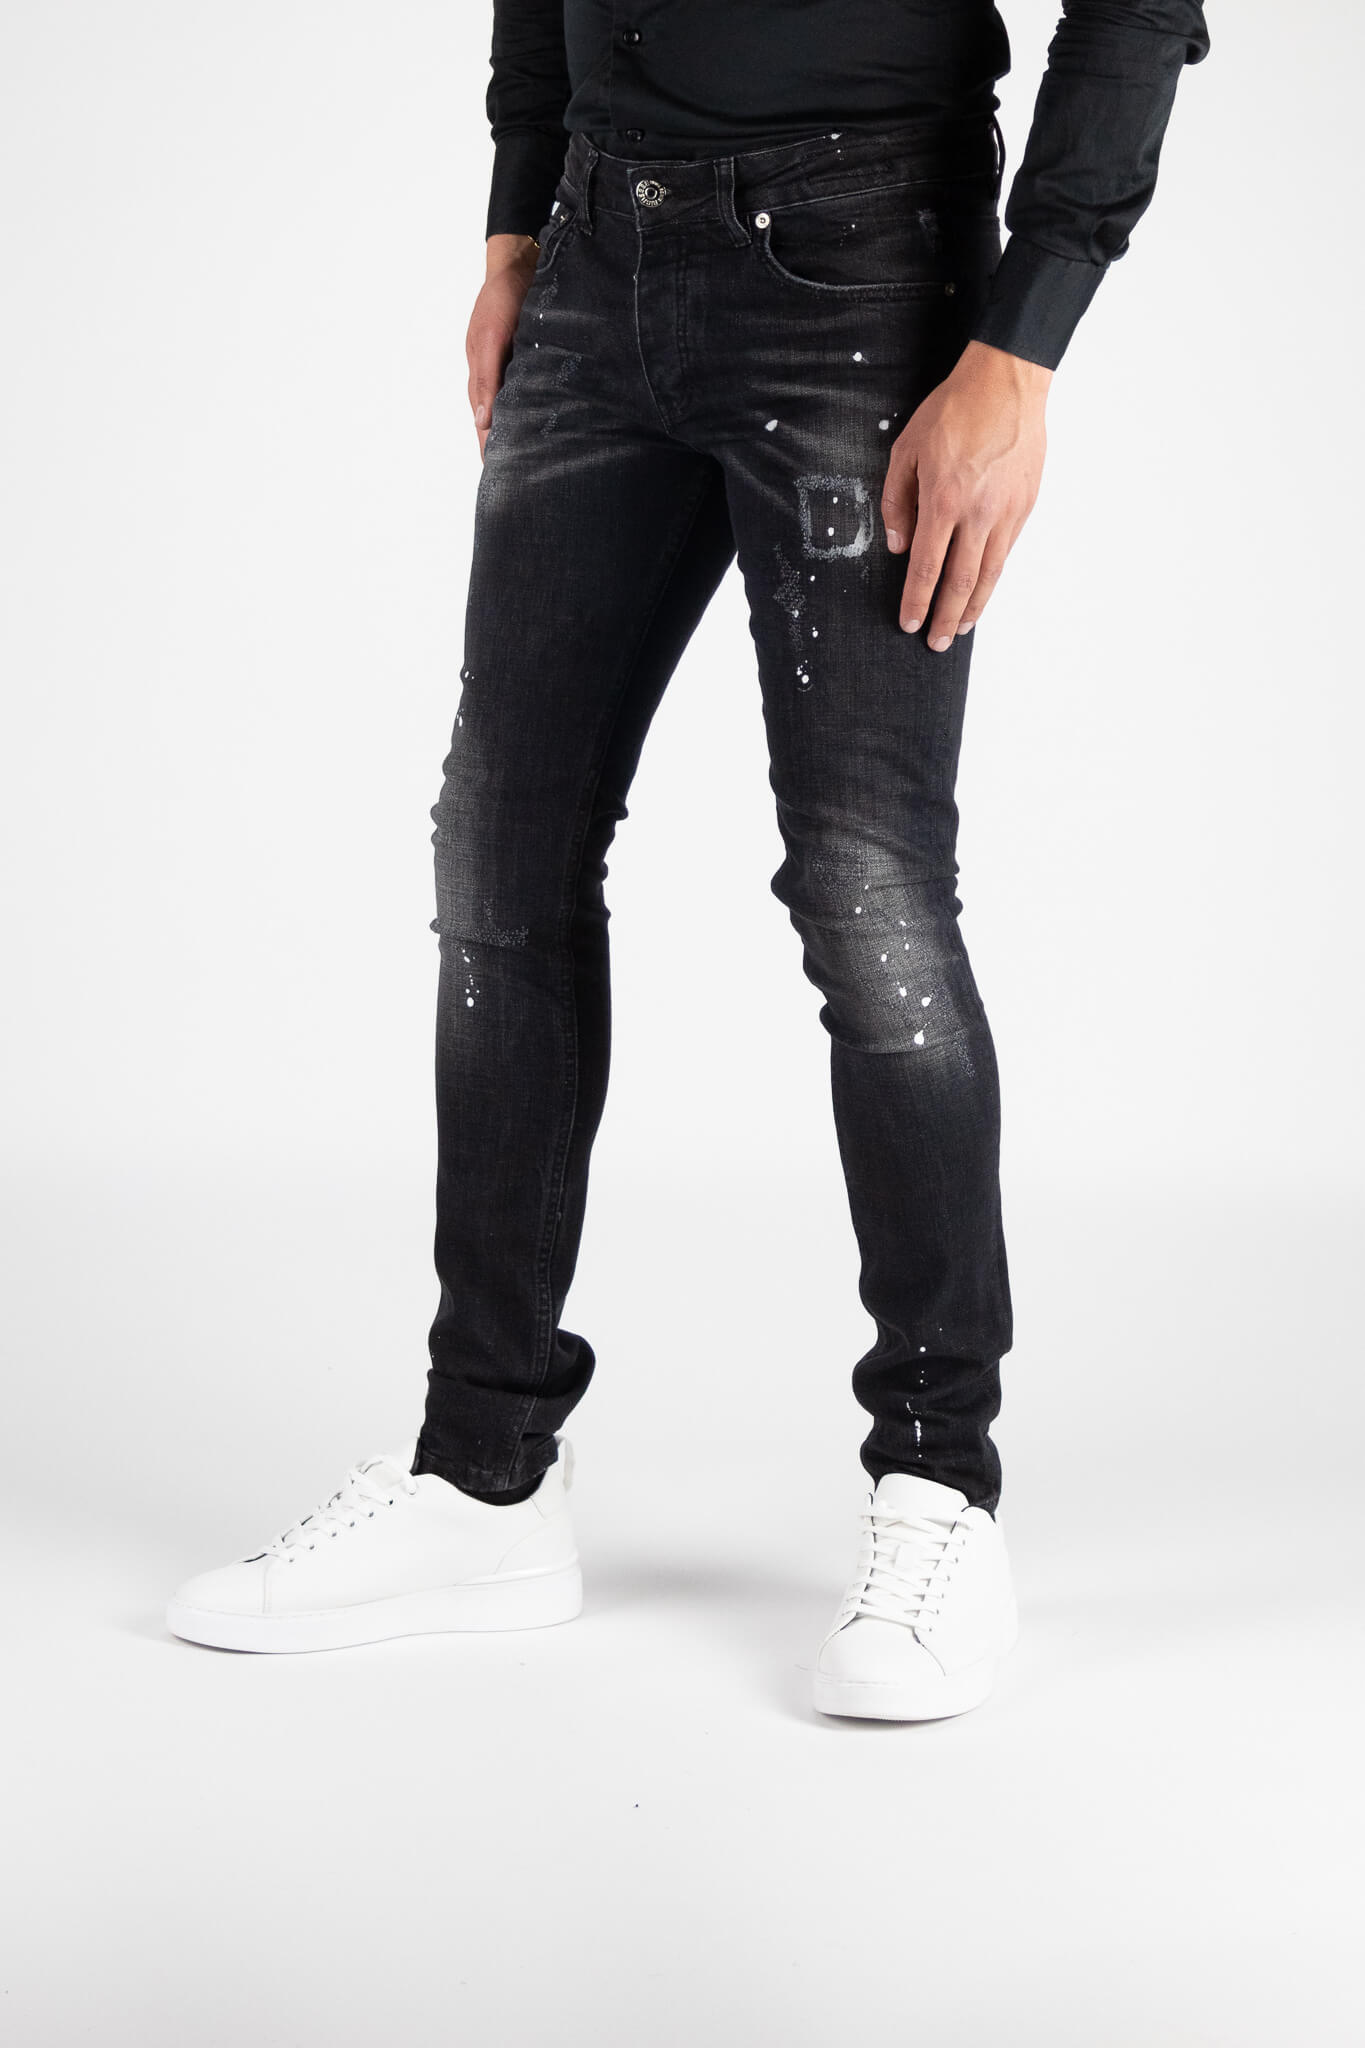 Chaves Black Jeans 3